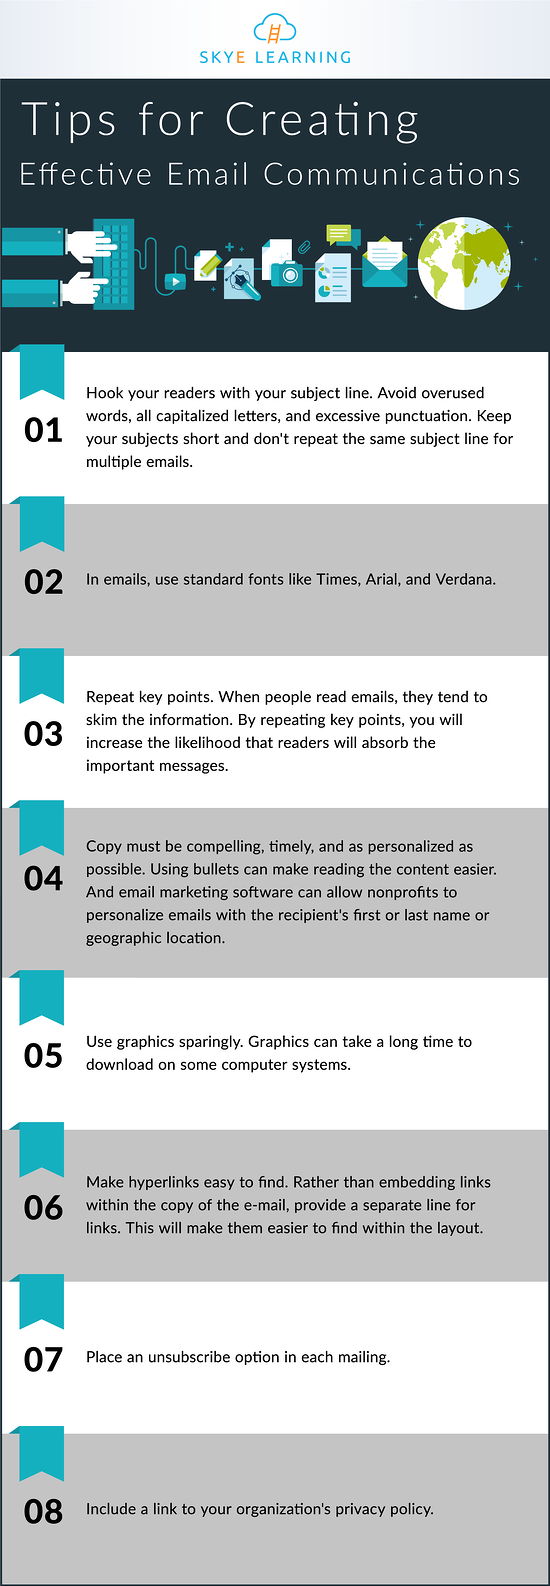 Tips-for-Creating-Effective-Email-Communications_SL_IG